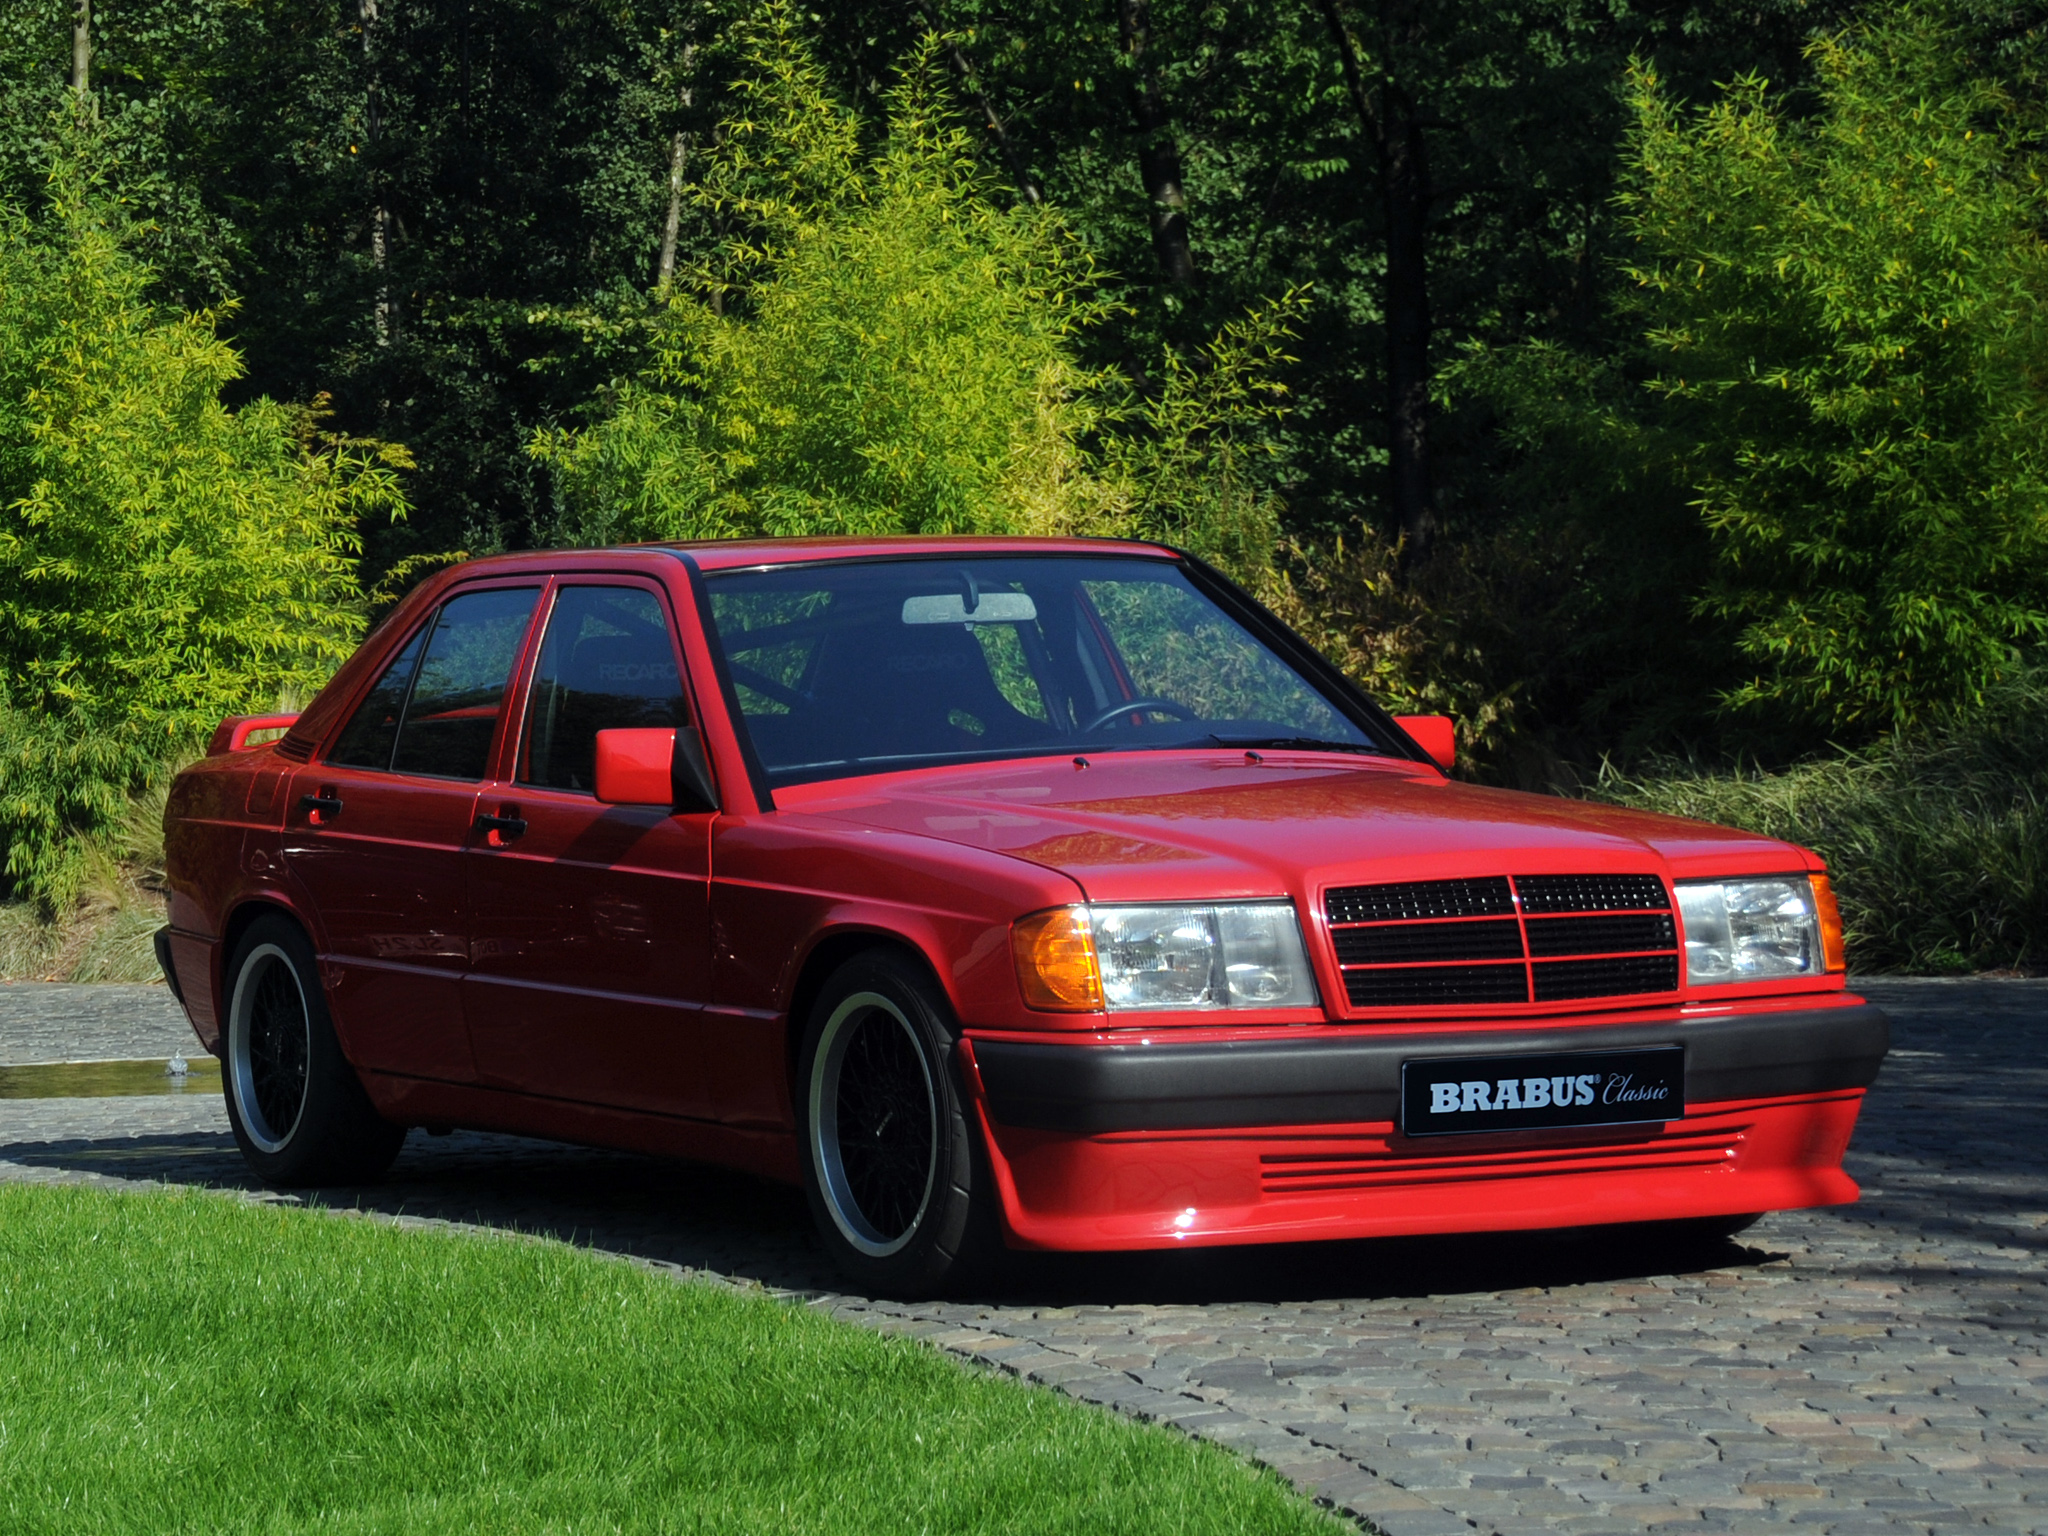 A Mighty Mercedes Brabus 190e 3 6 Inline 6 Cylinder Turbo